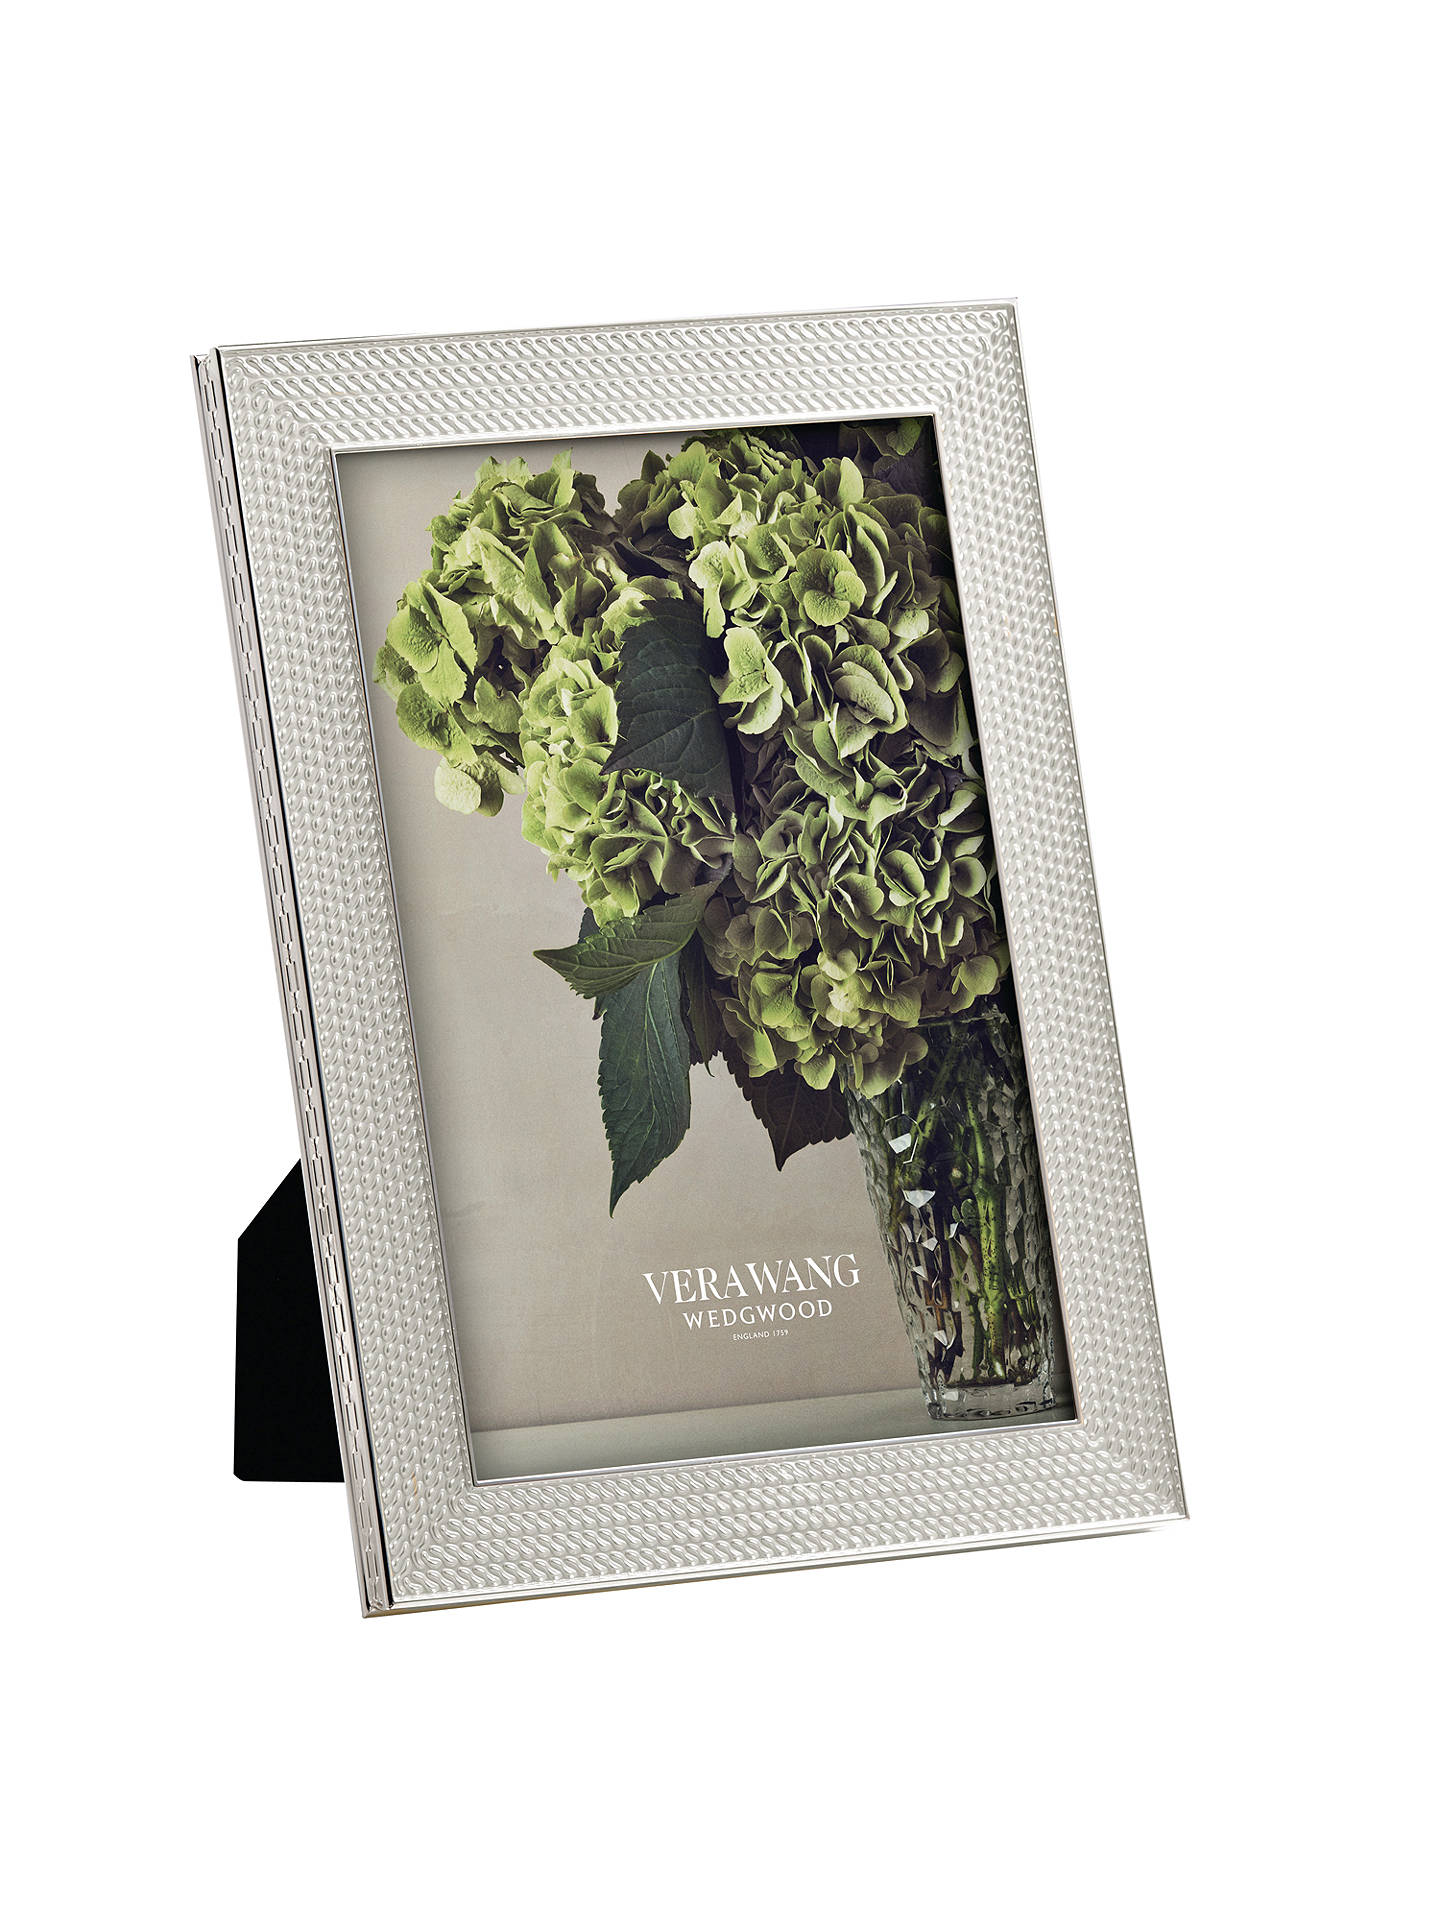 Vera Wang For Wedgwood With Love Frame 4 X 6 At John Lewis